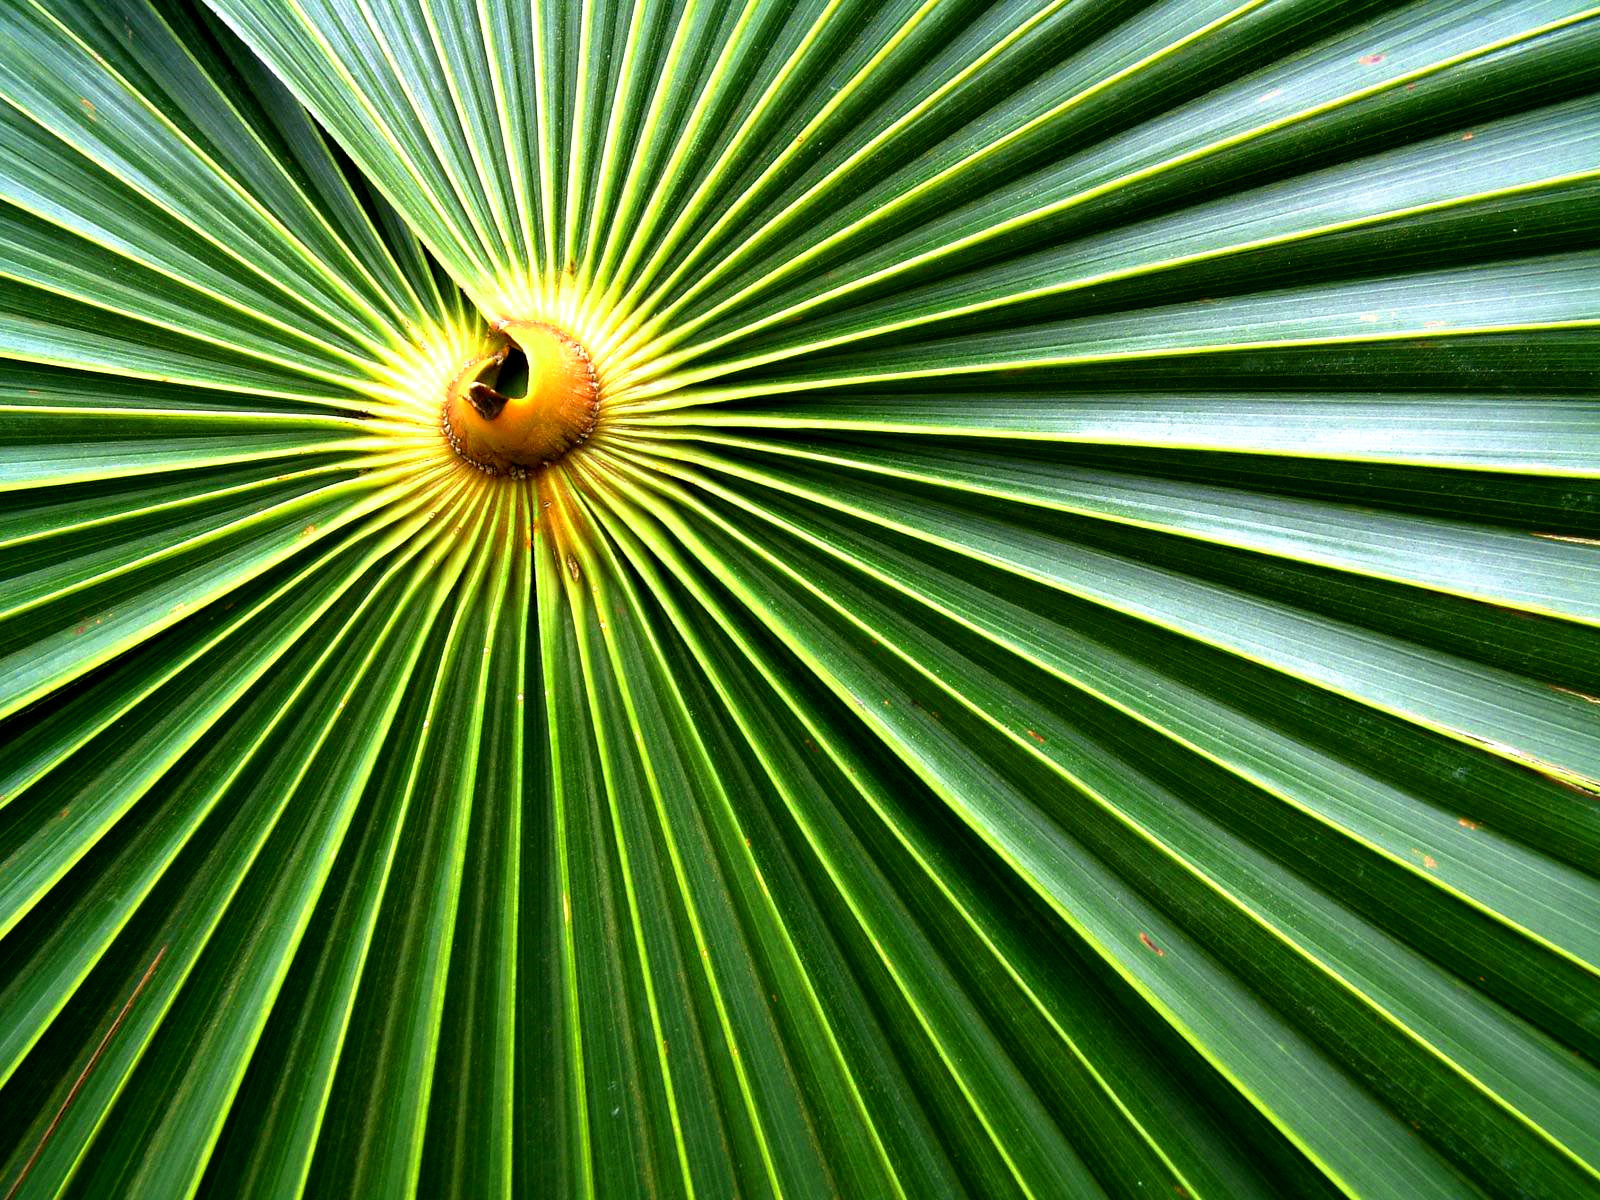 Palm Sunday Wallpaper Free HD Backgrounds Images Pictures